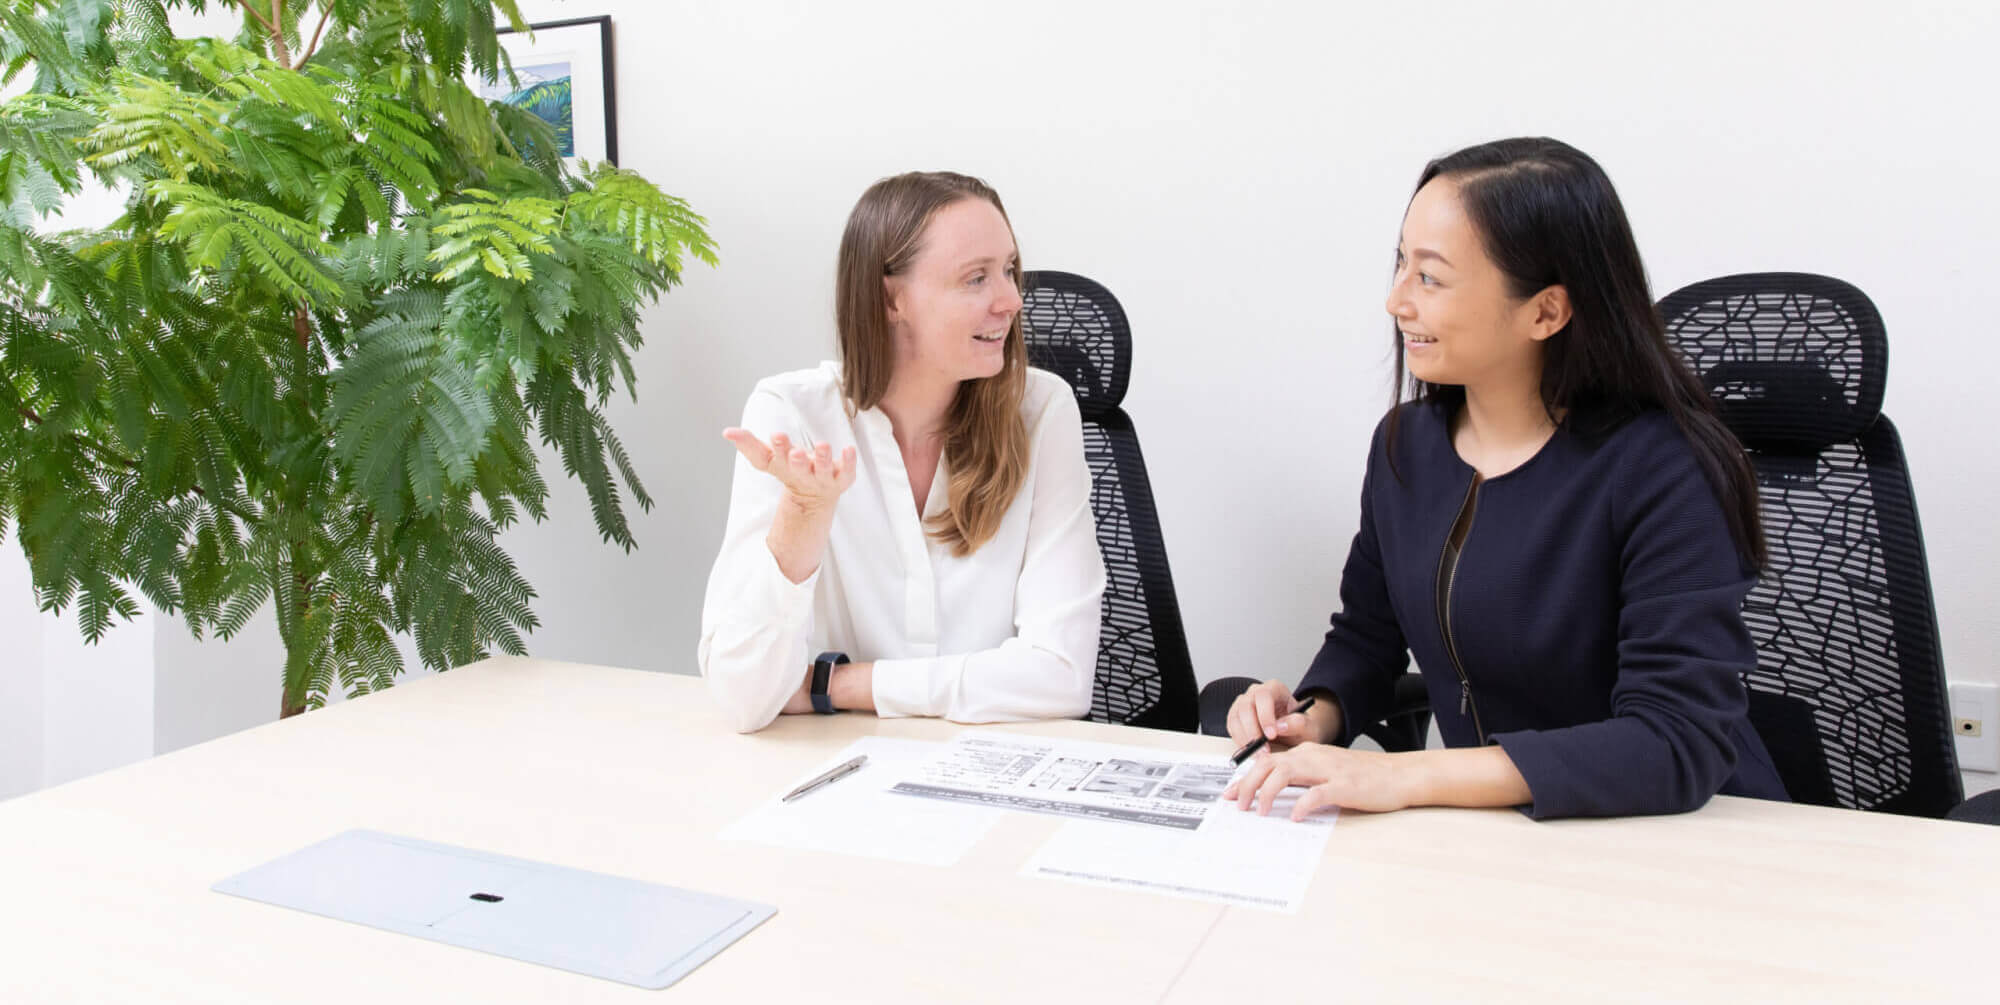 10% off services for expats who need help with Japanese language